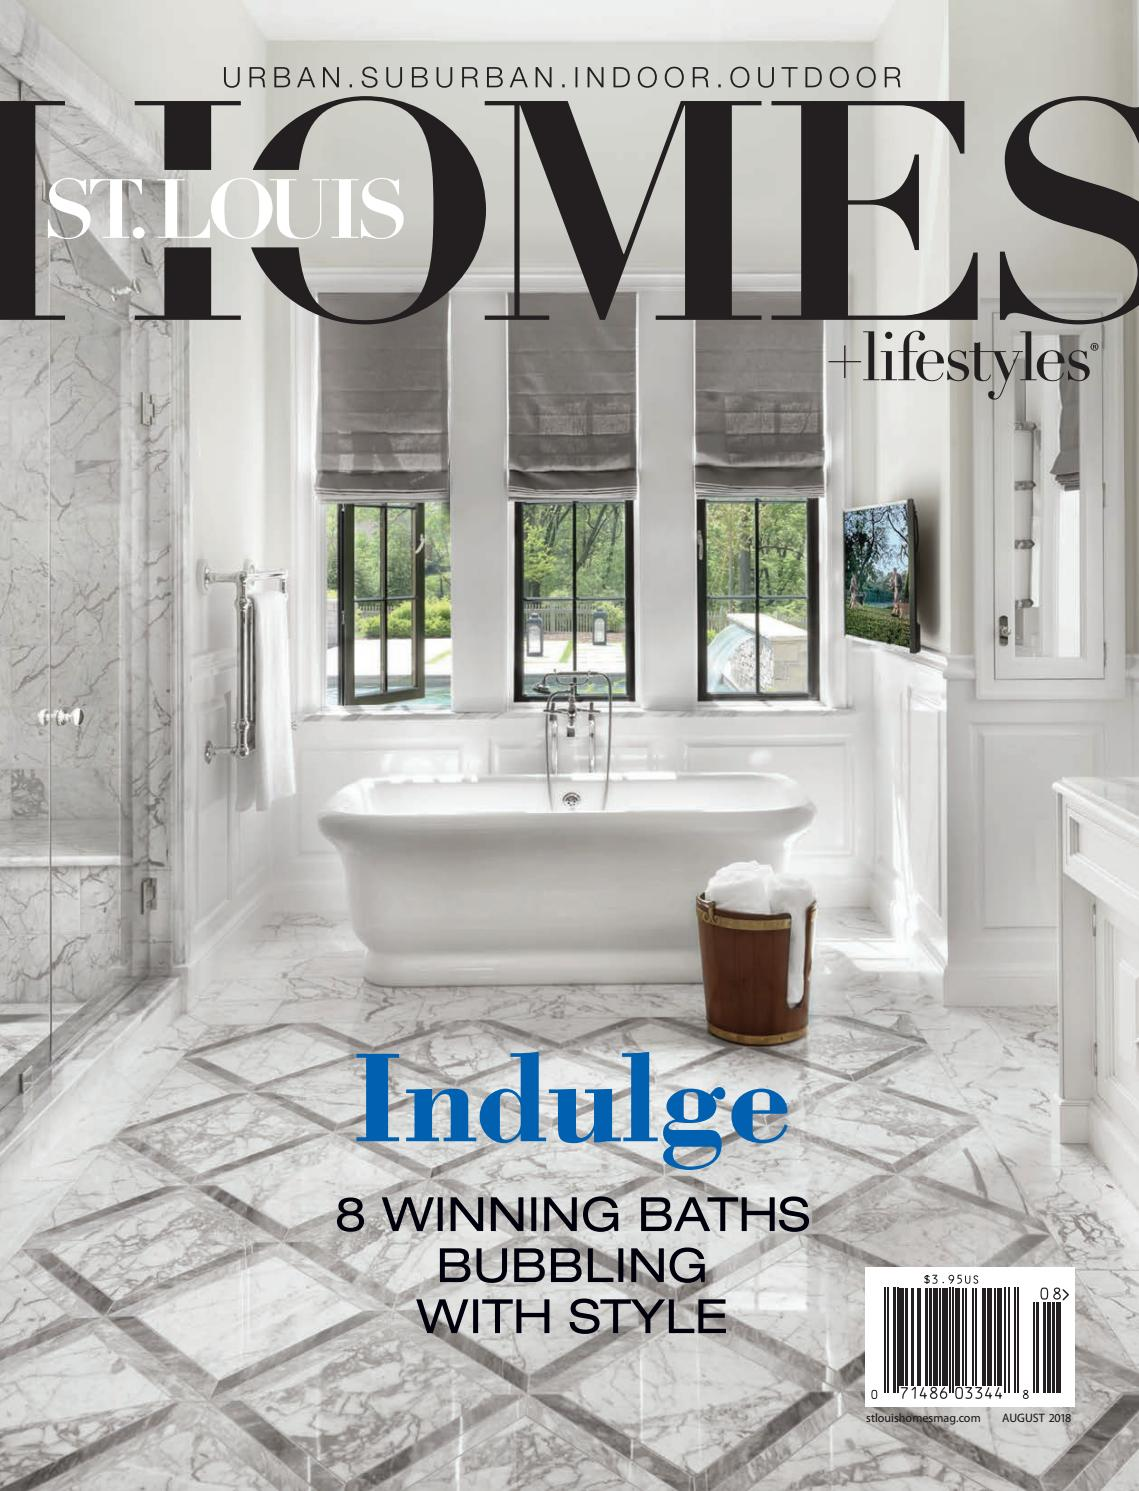 Incredible August 2018 By St Louis Homes Lifestyles Issuu Gmtry Best Dining Table And Chair Ideas Images Gmtryco